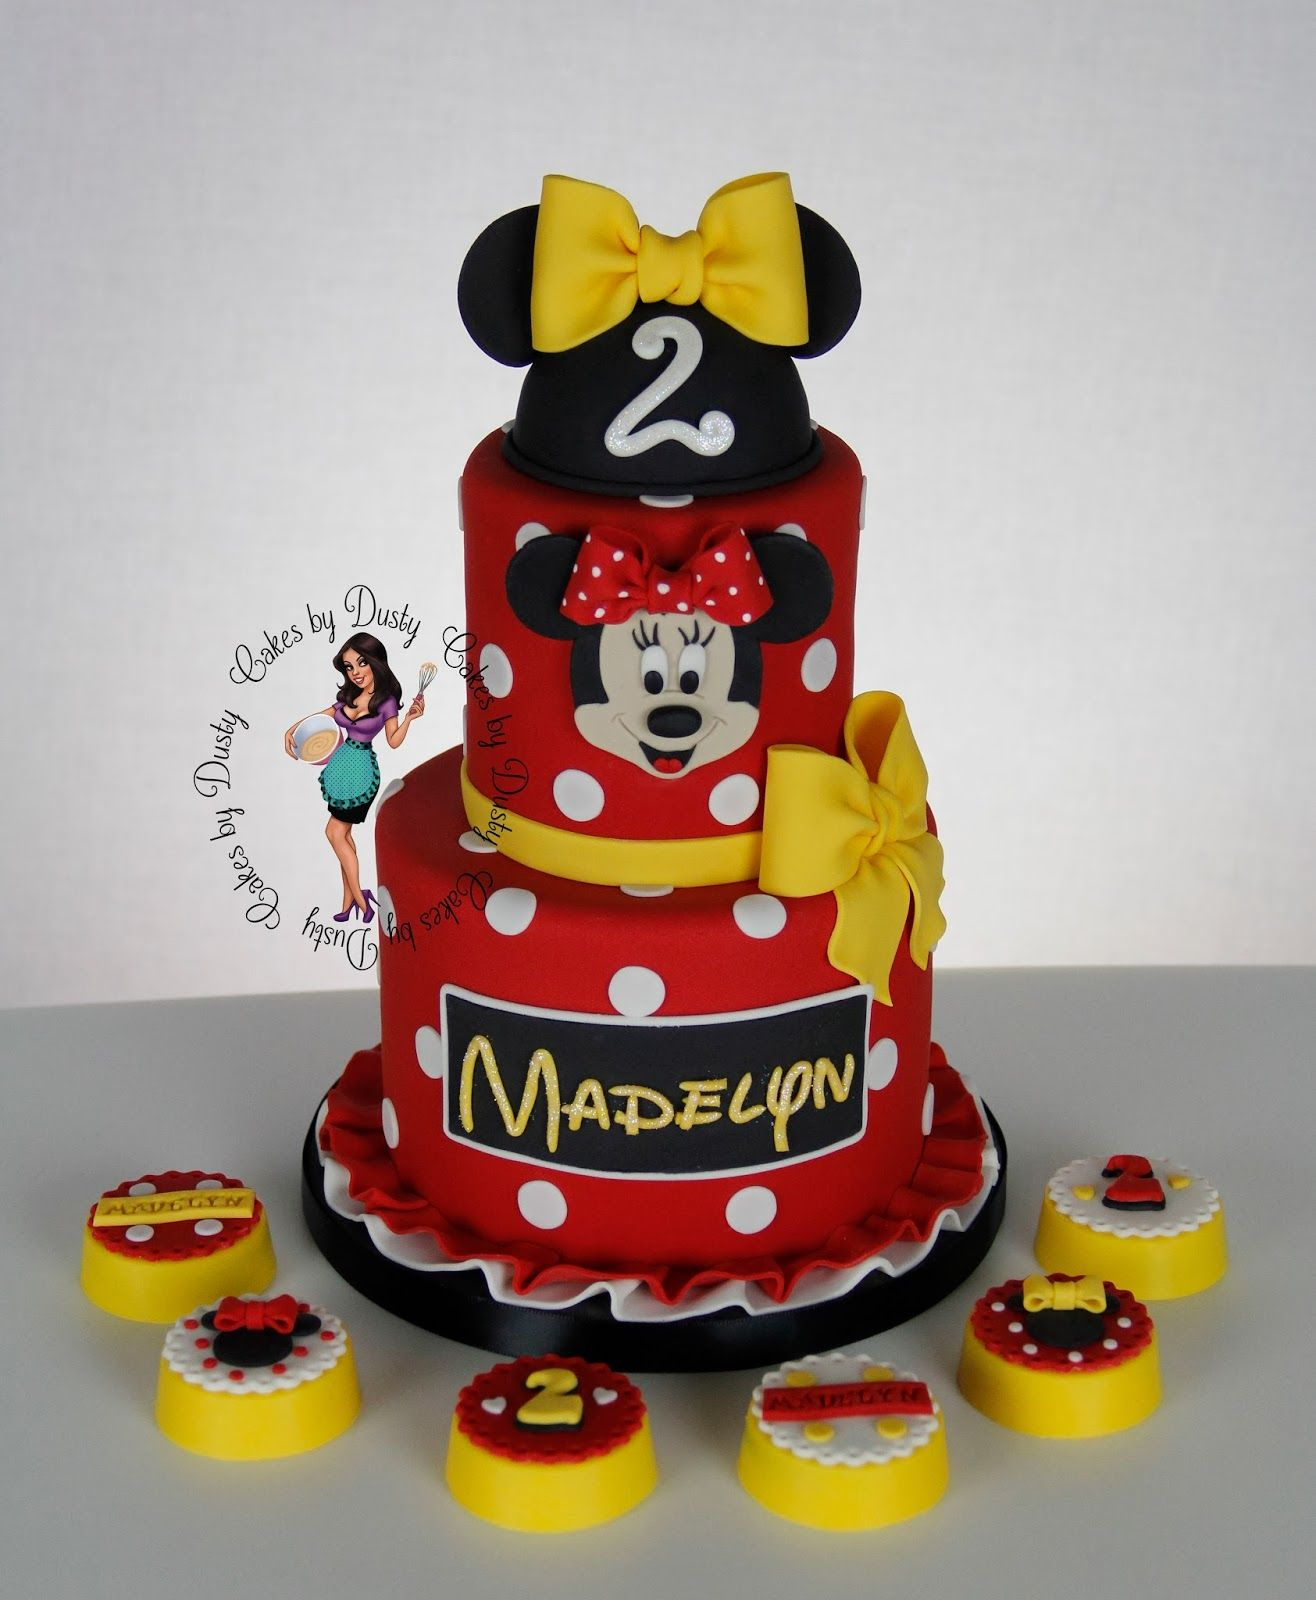 Red Amp White Minnie Mouse Cake With Matching Cookies